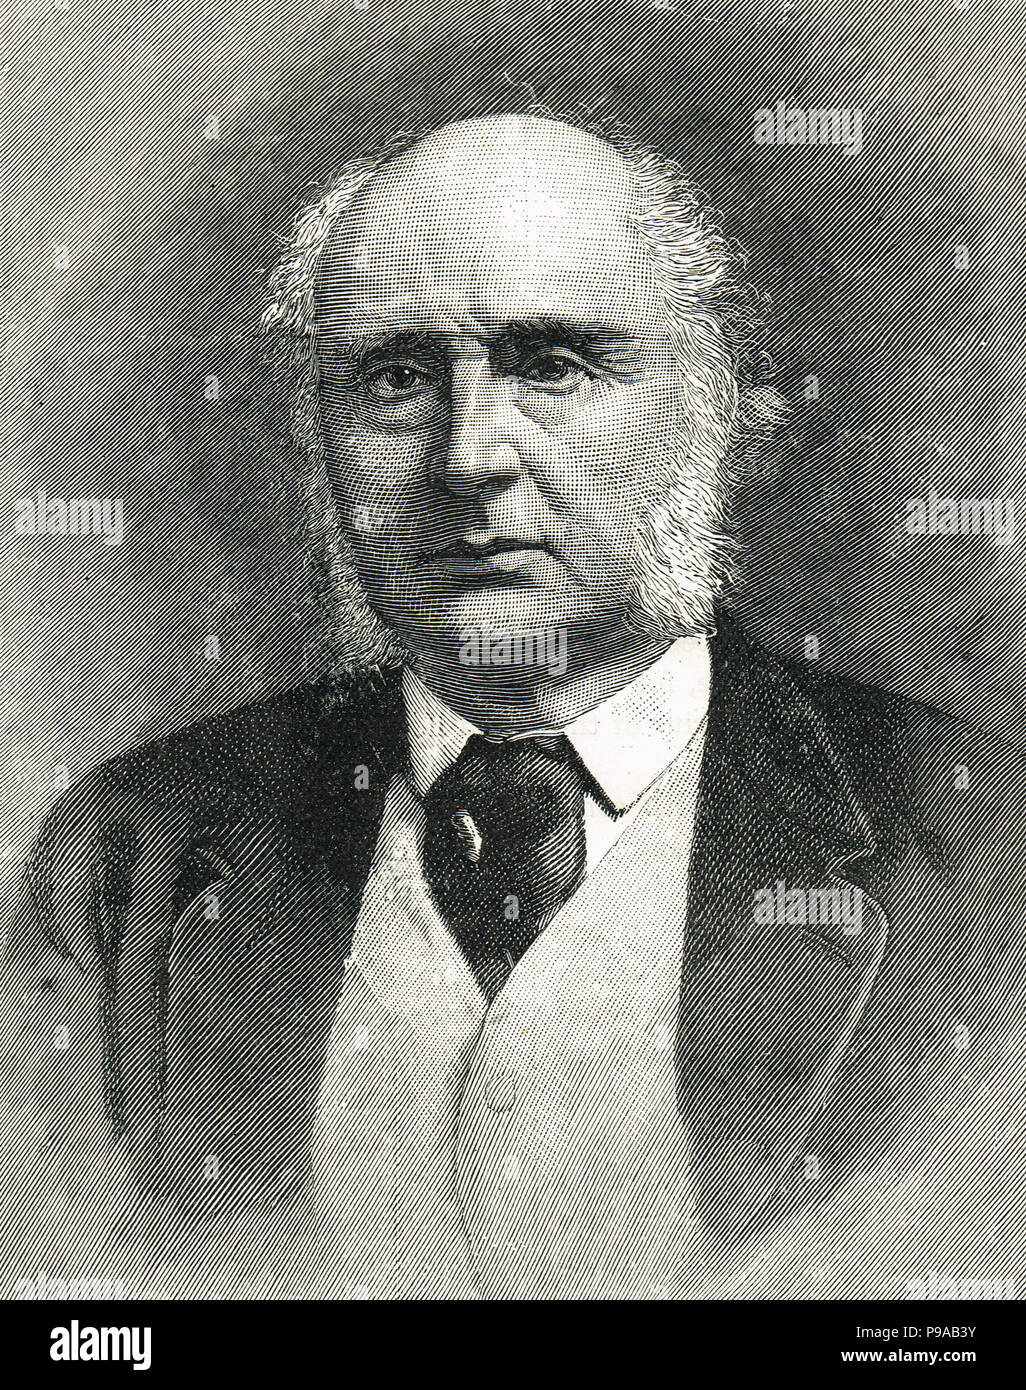 James Wilde, 1st Baron Penzance.  A noted British judge who presided over a number of notorious trials - Stock Image